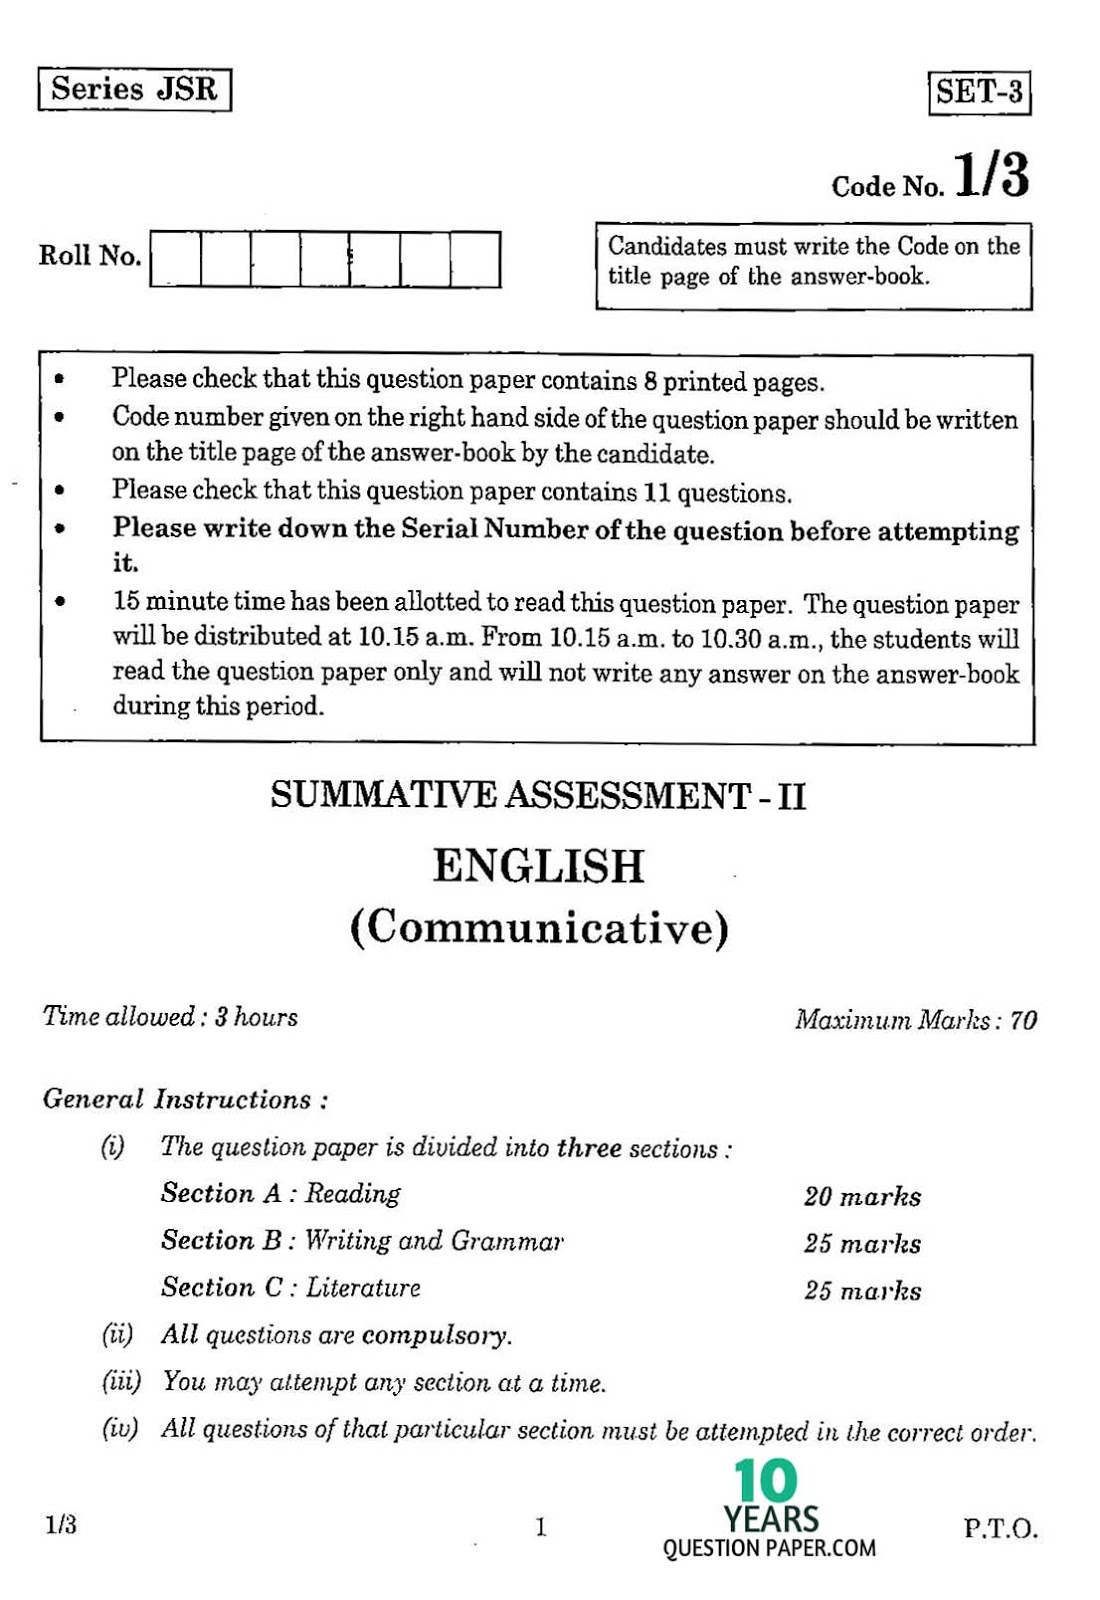 Worksheet On Ratio And Proportion For Class 6 Cbse